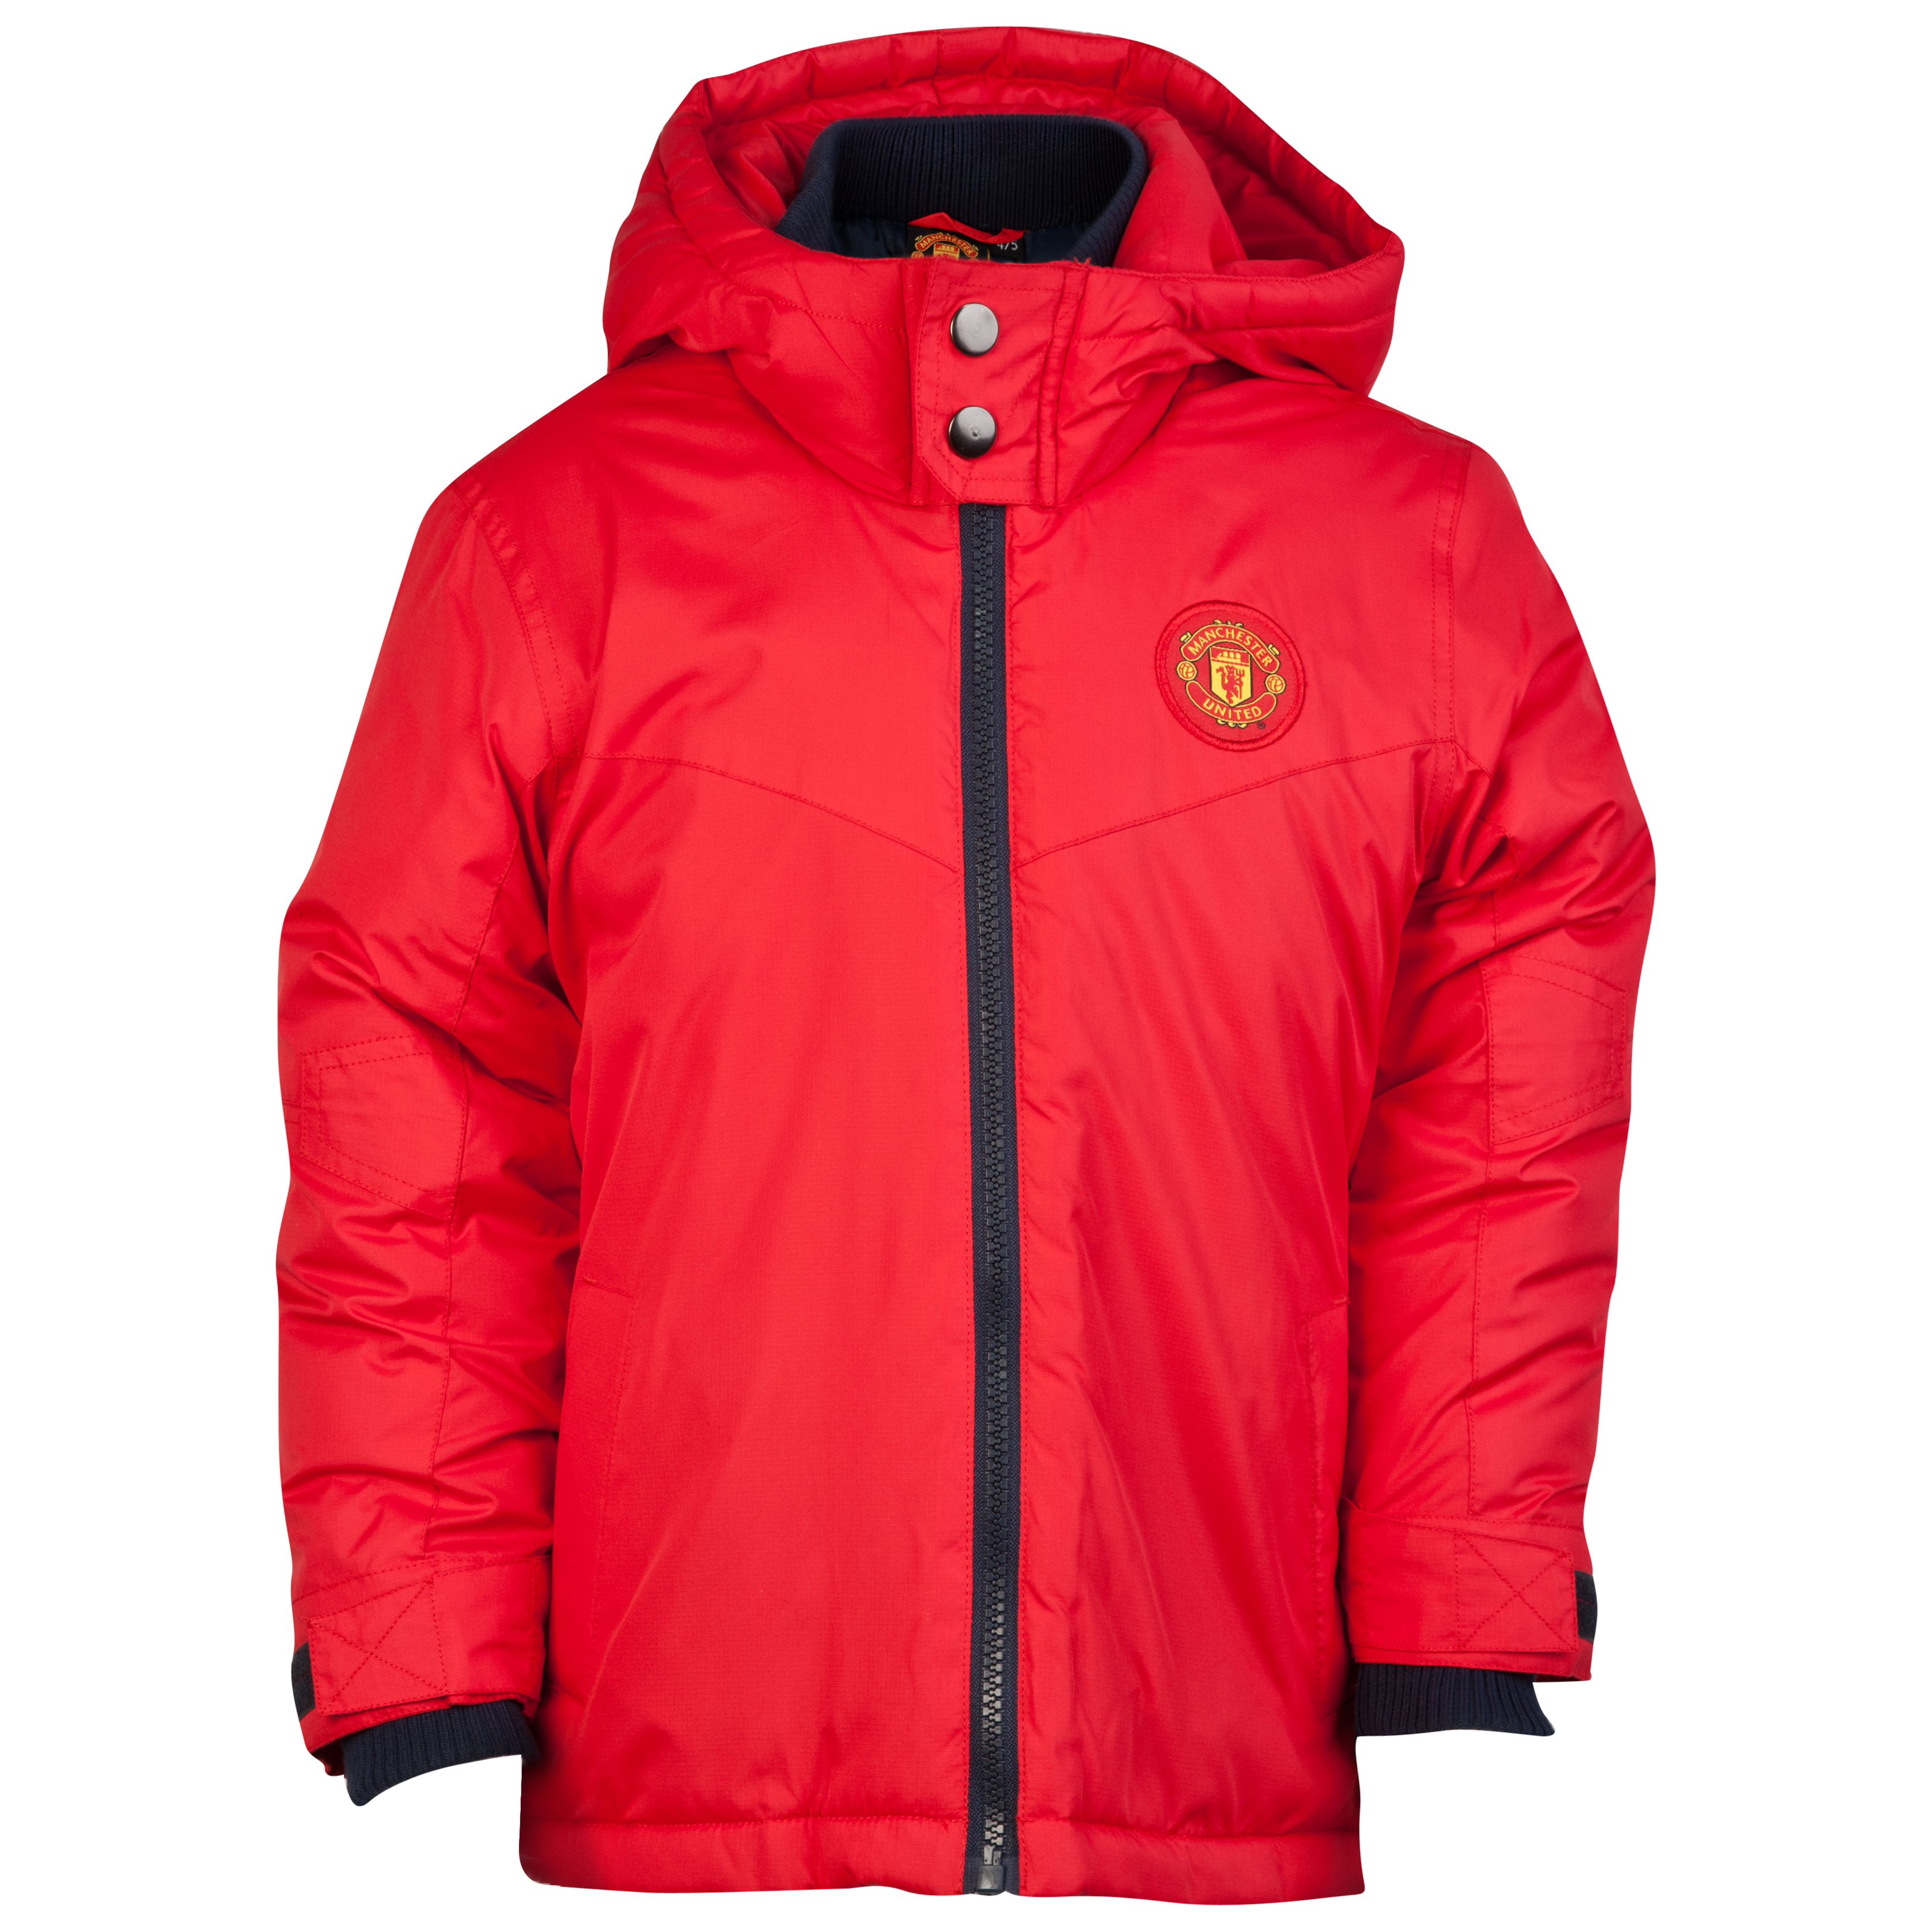 Manchester United Padded Jacket - OT Red - Infant Boys